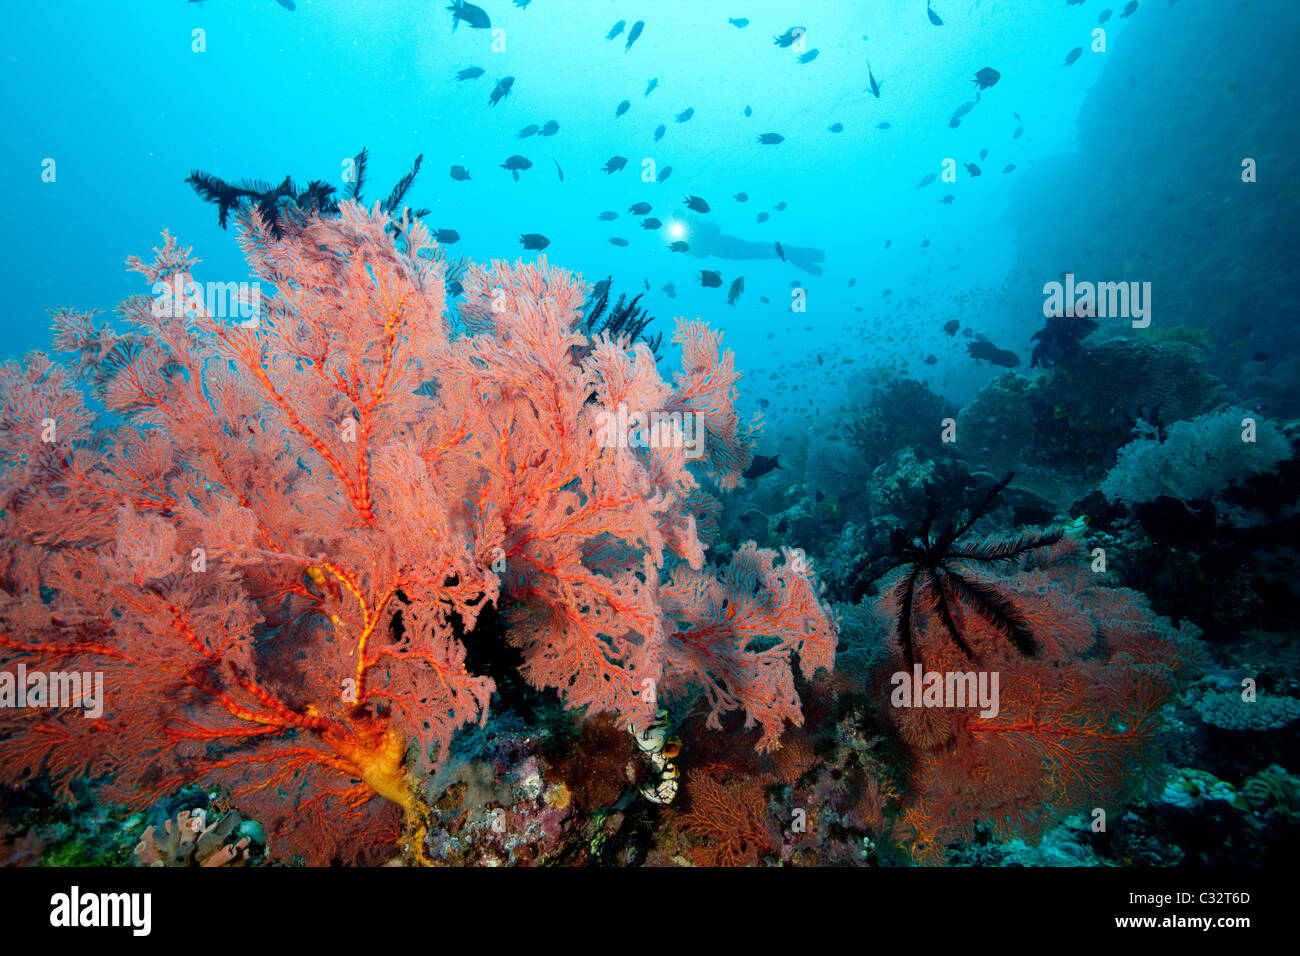 Thriving coral reef - Stock Image